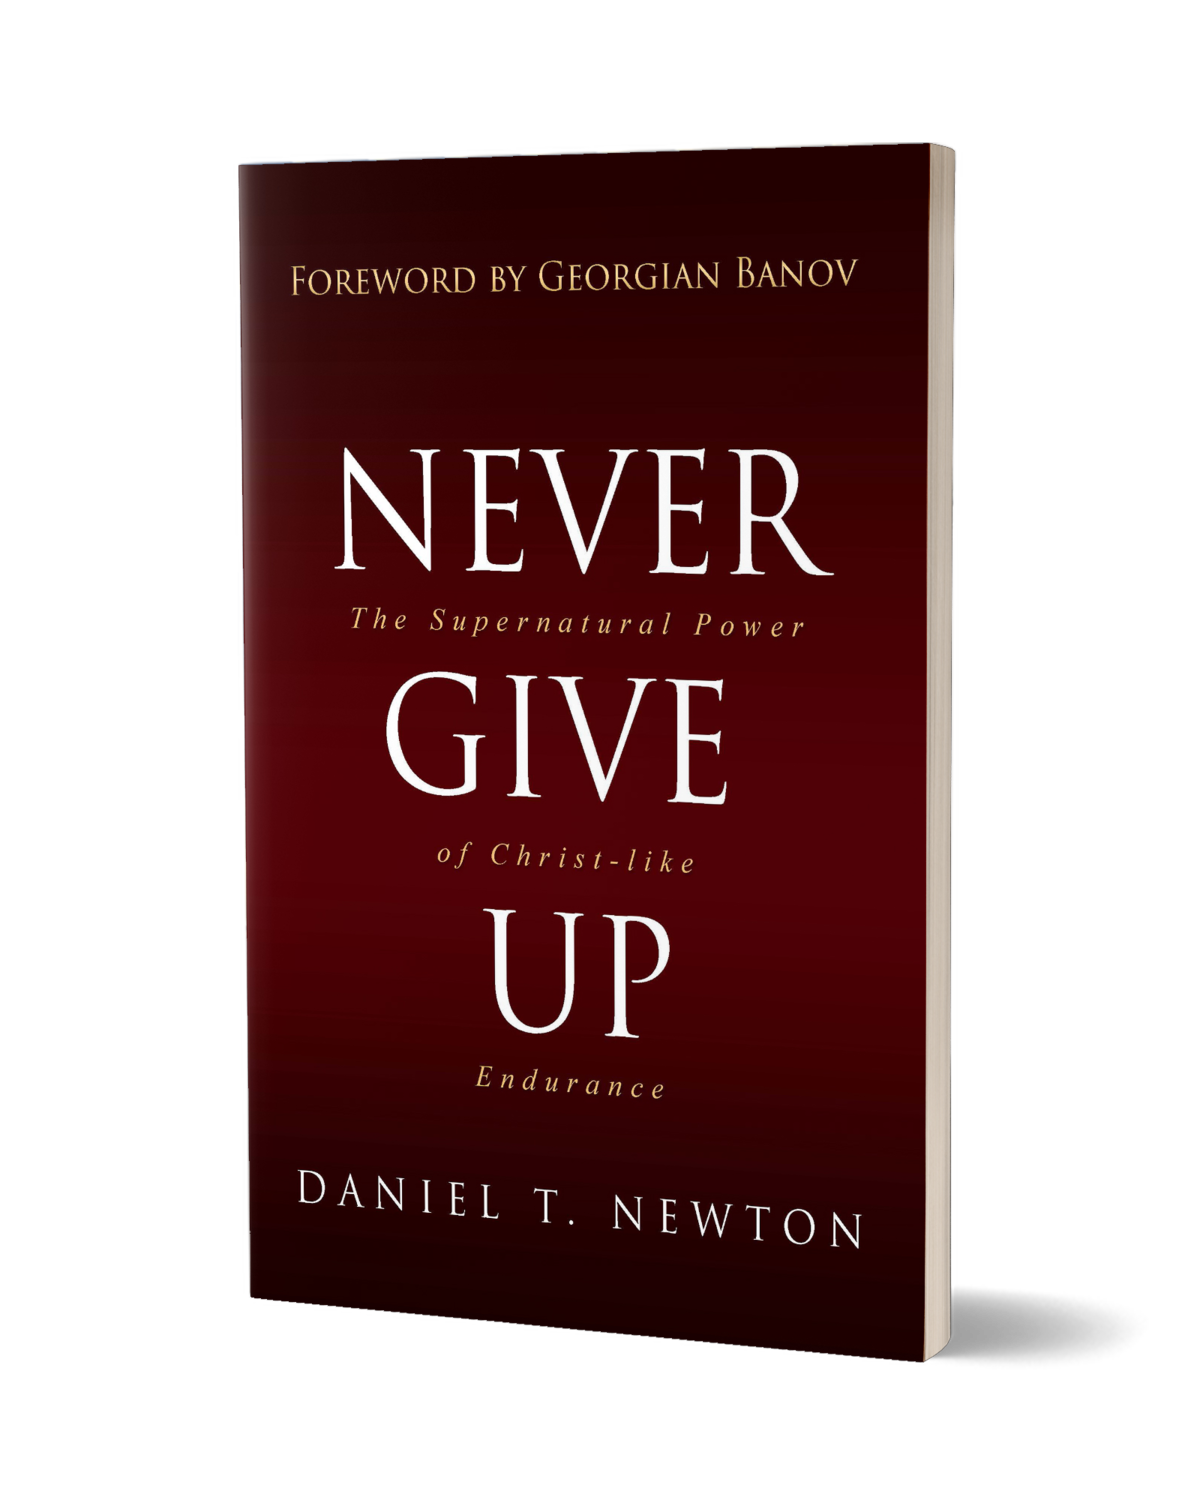 Never Give Up: Supernatural Power of Christ-like Endurance